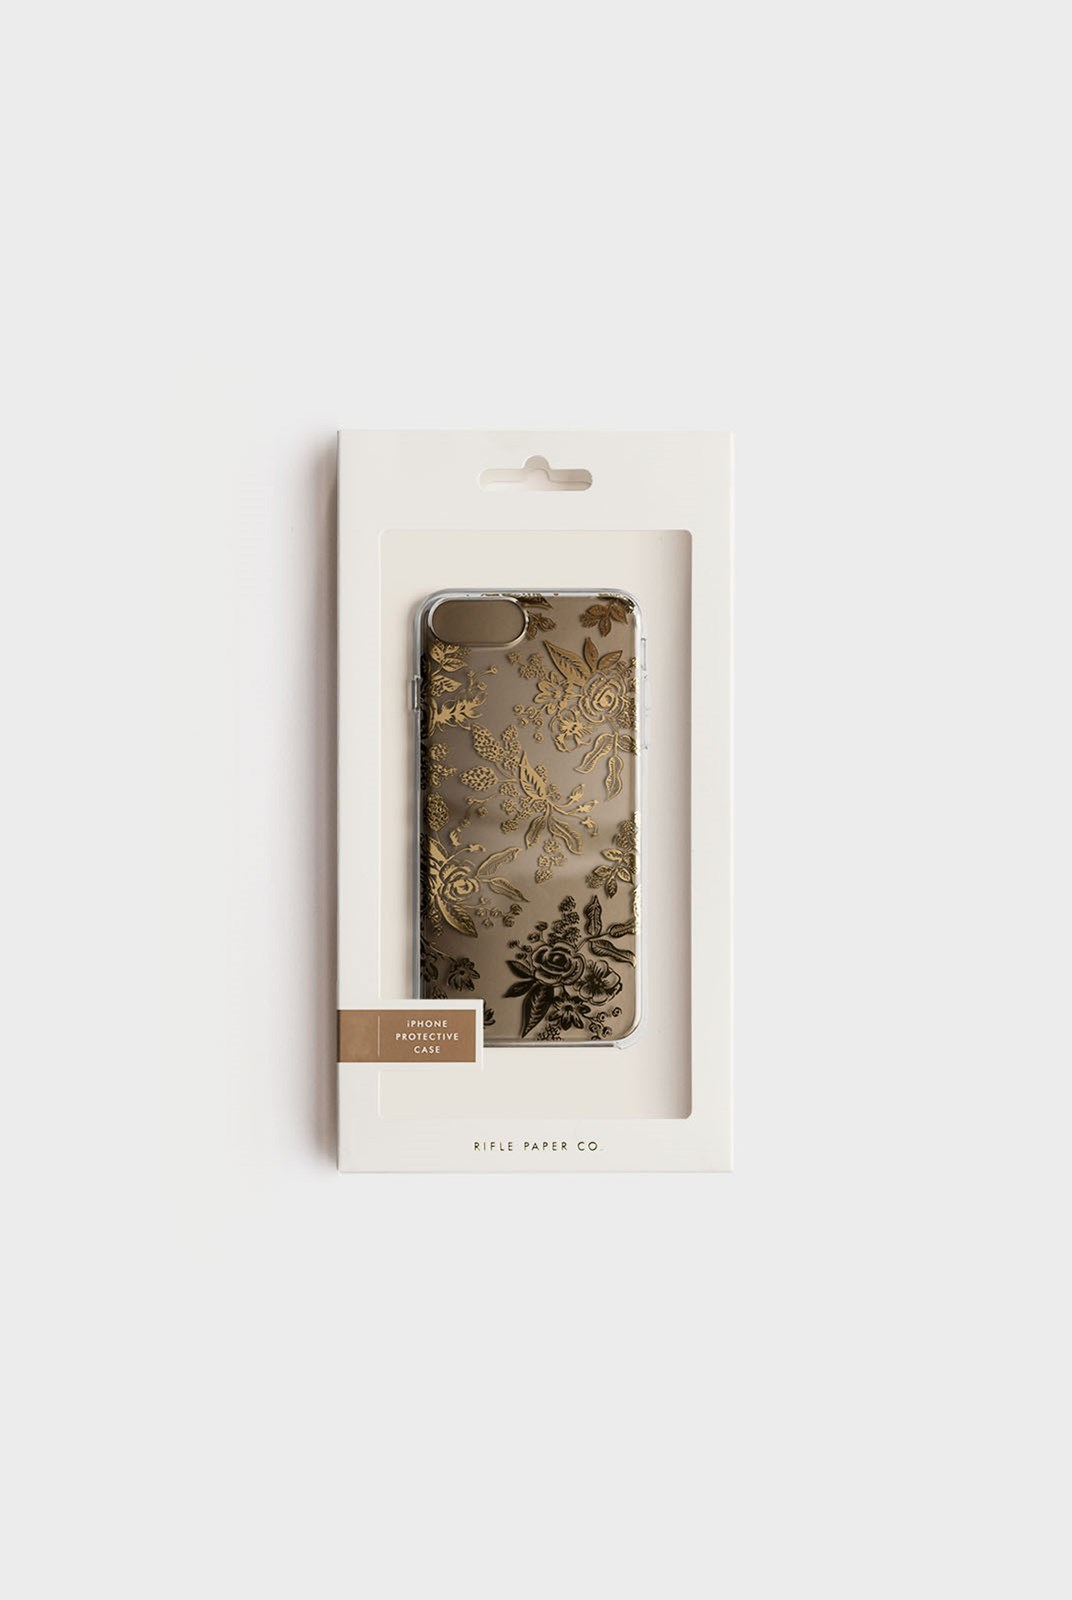 Rifle Paper Co - iPhone 6/7/8 Hard Case - Clear Gold Floral Toile